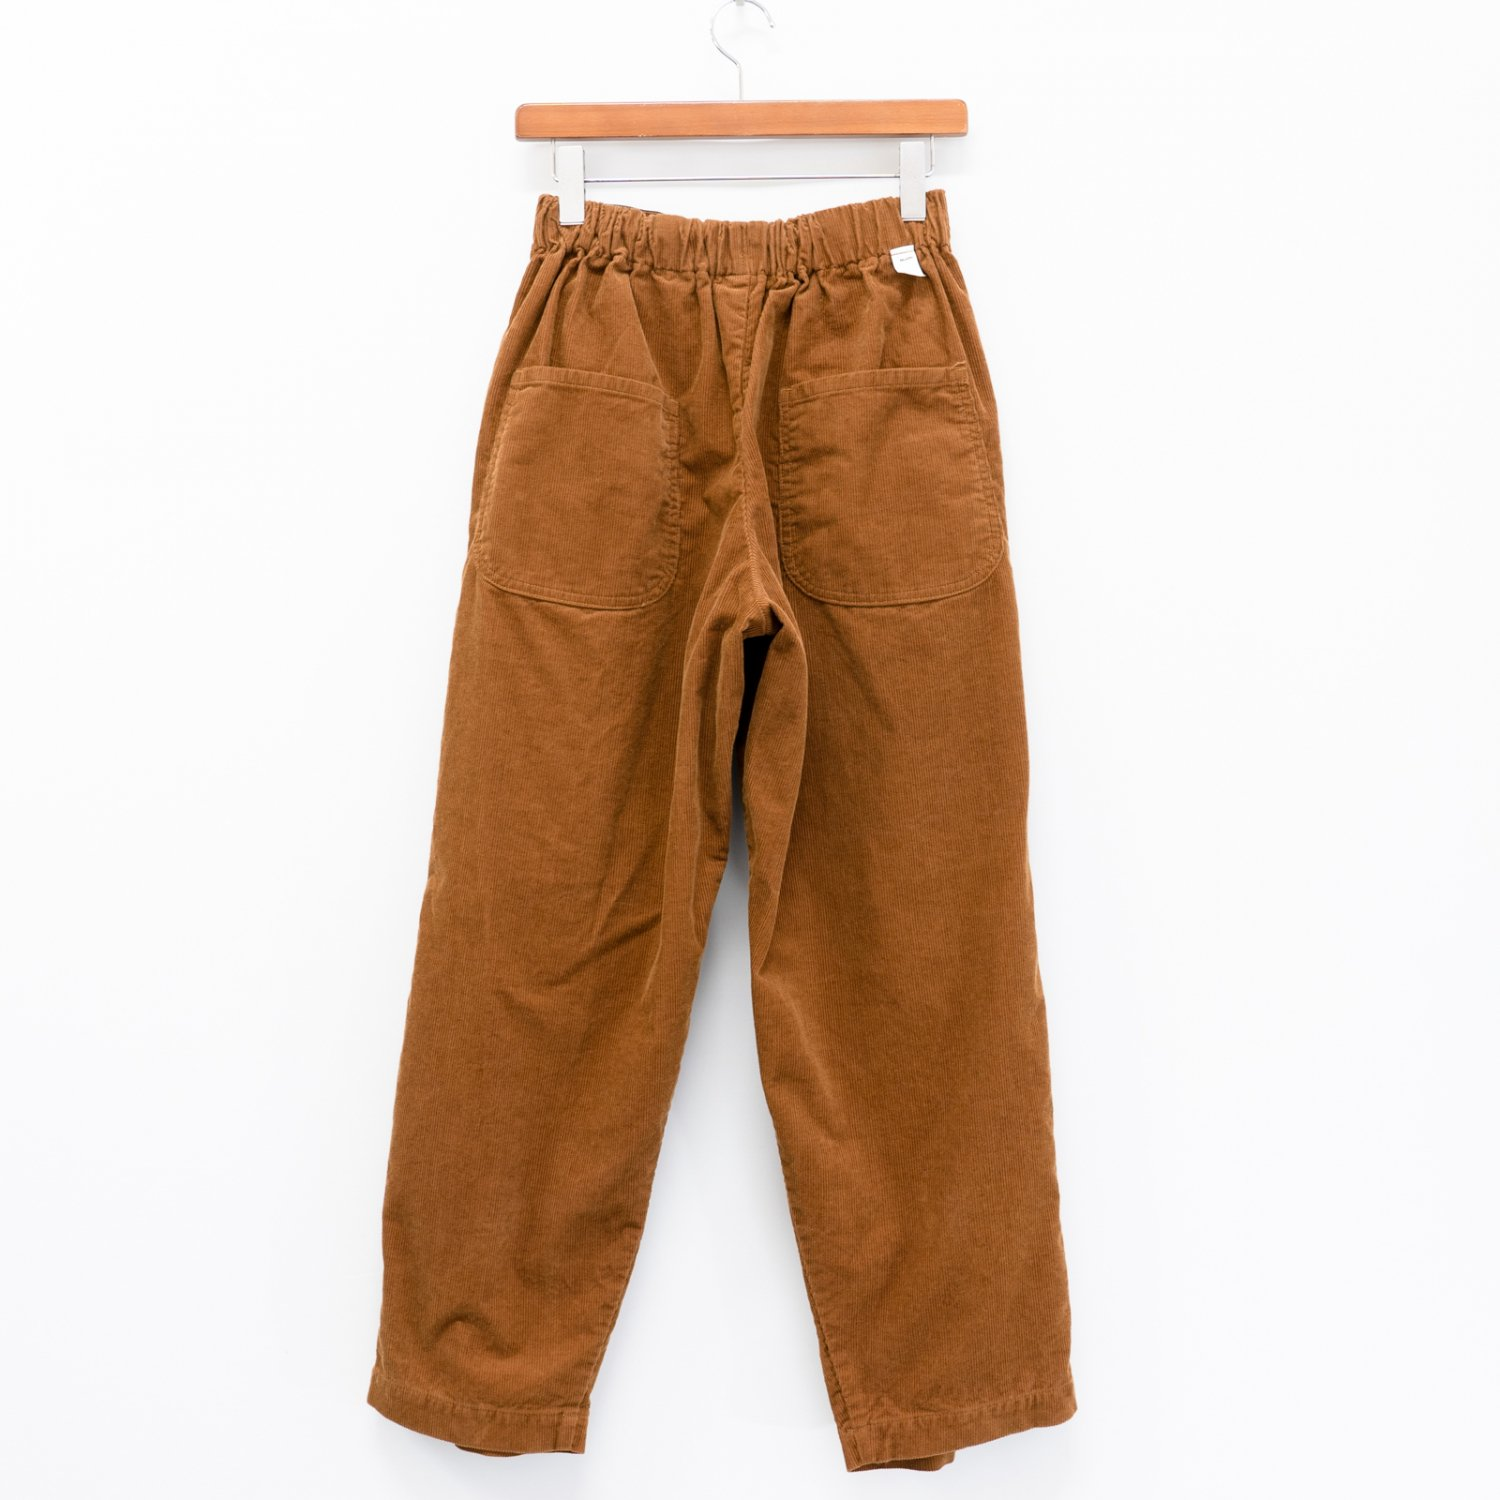 RELAXFIT * NORTH PADRE ISLAND Corduroy * Camel